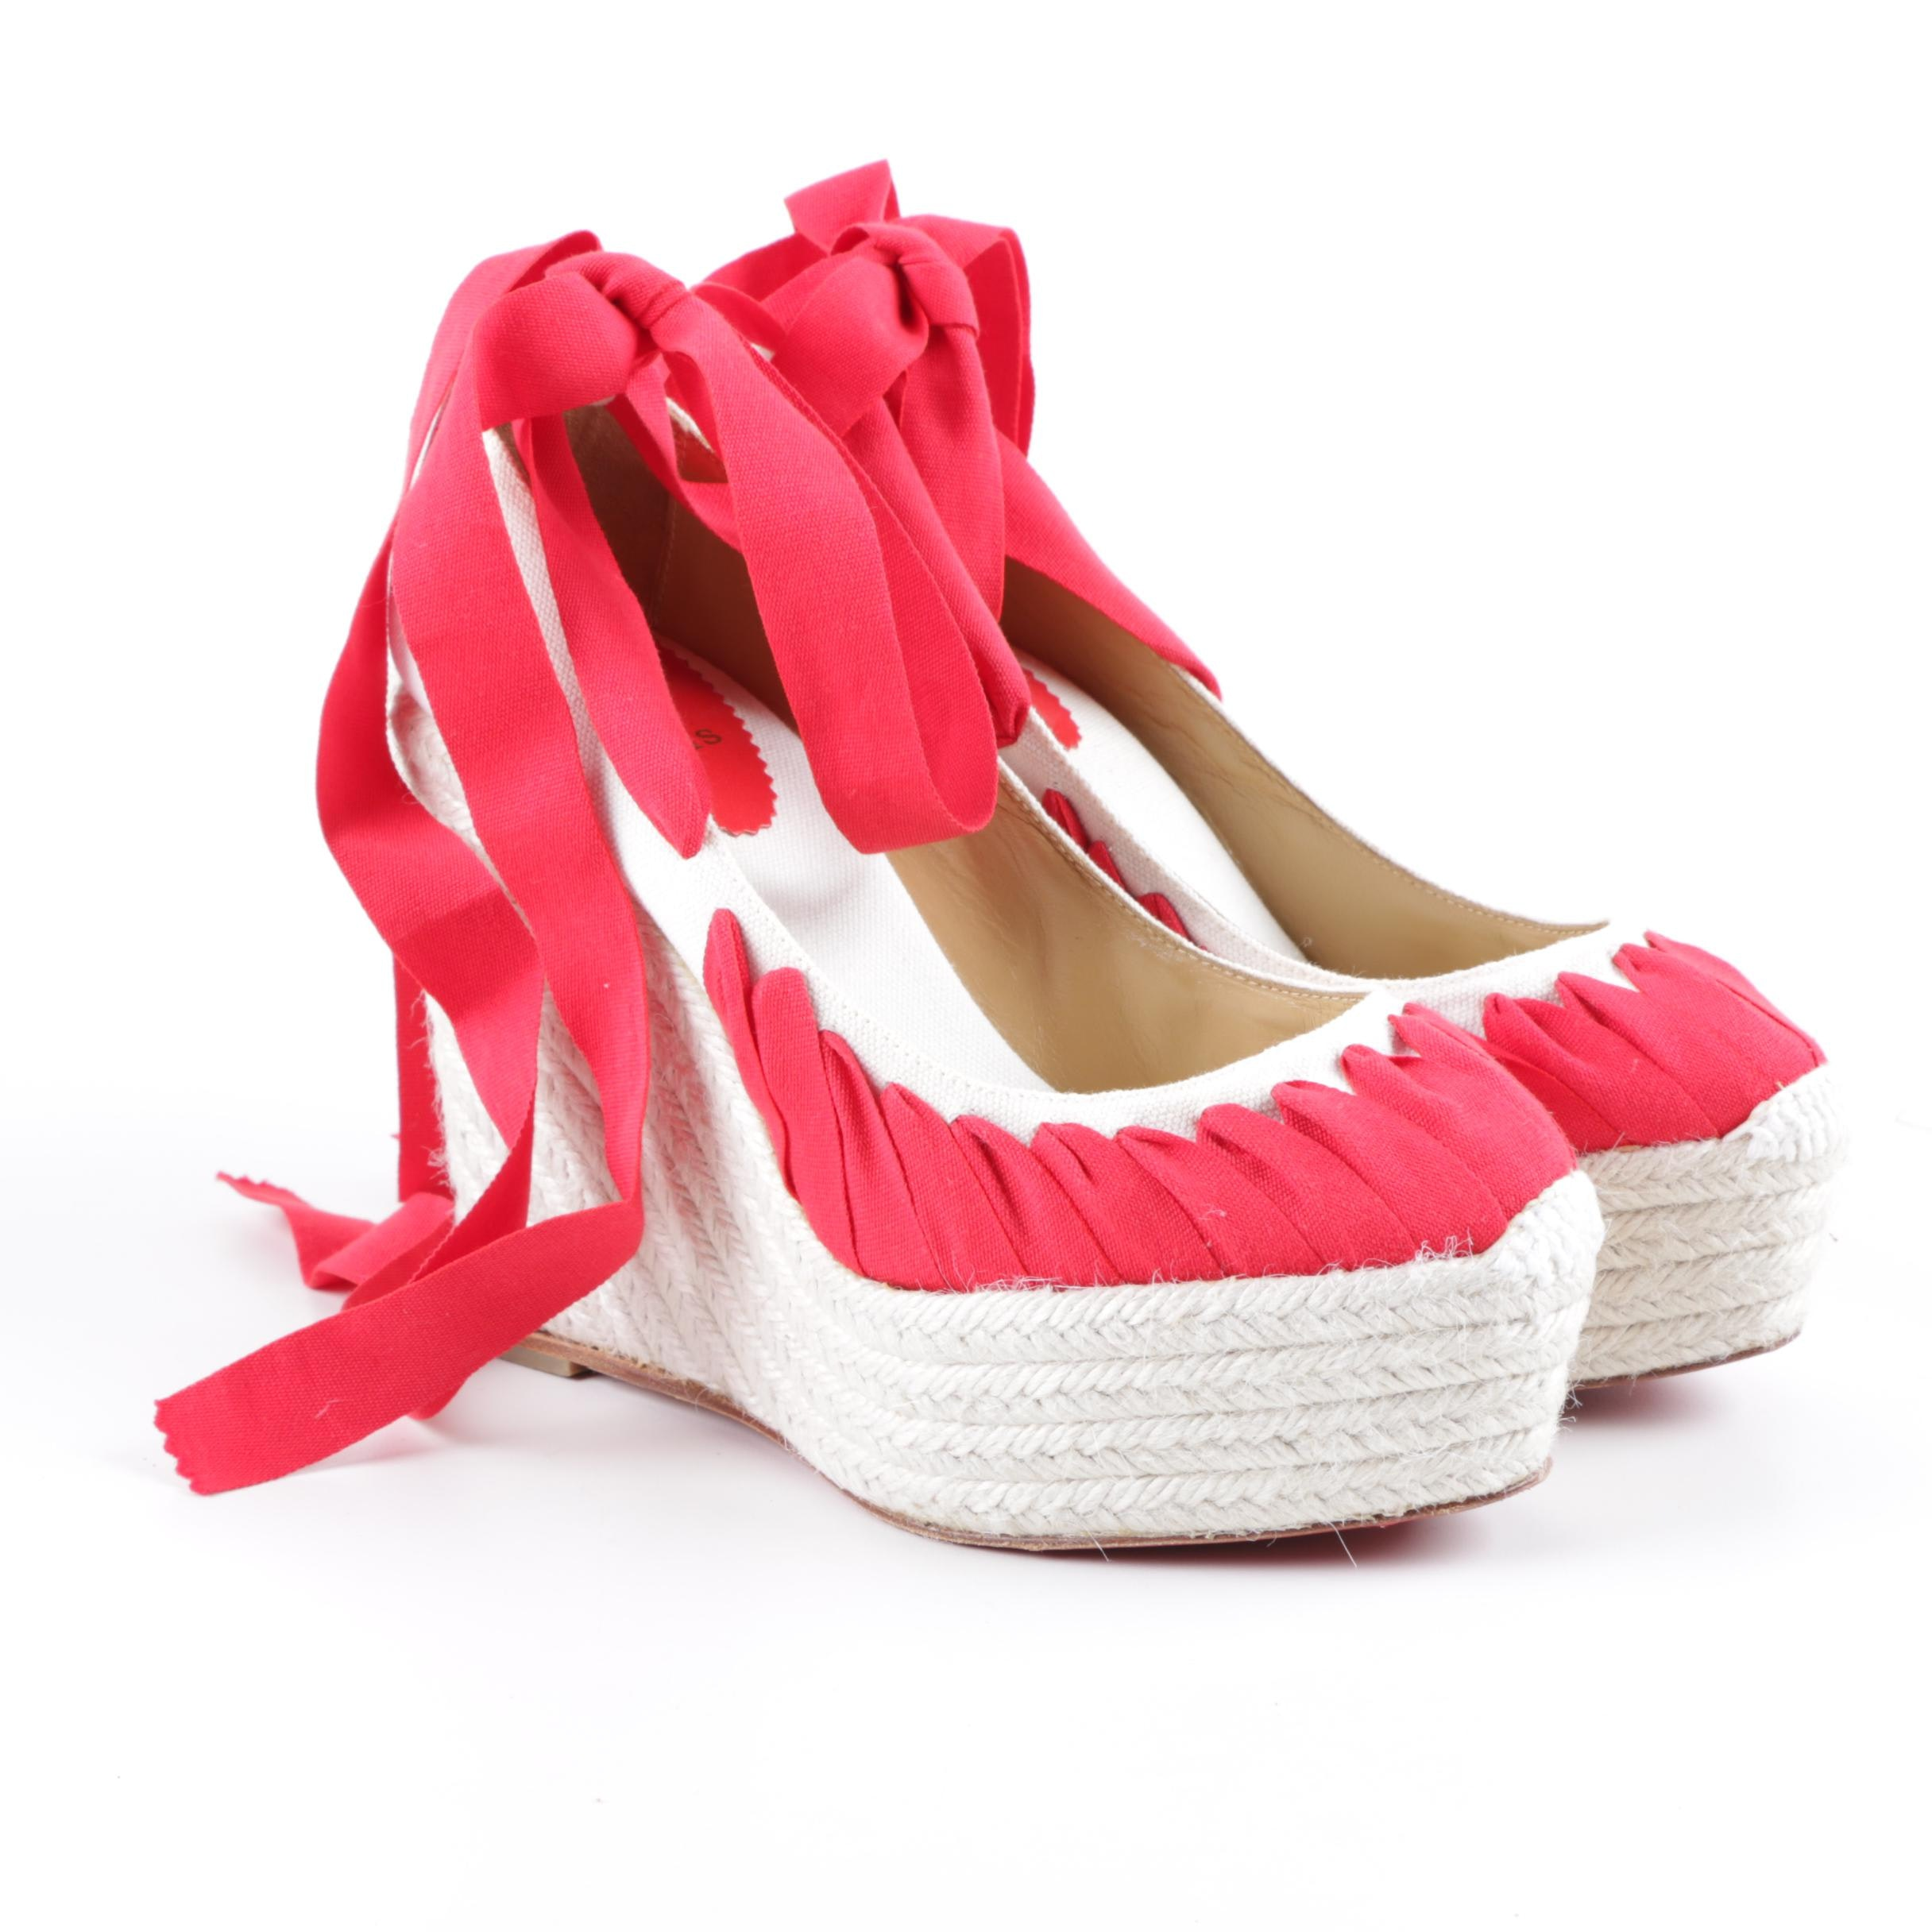 Women's Christian Louboutin of Paris Ibiza Jute Espadrille Wedges